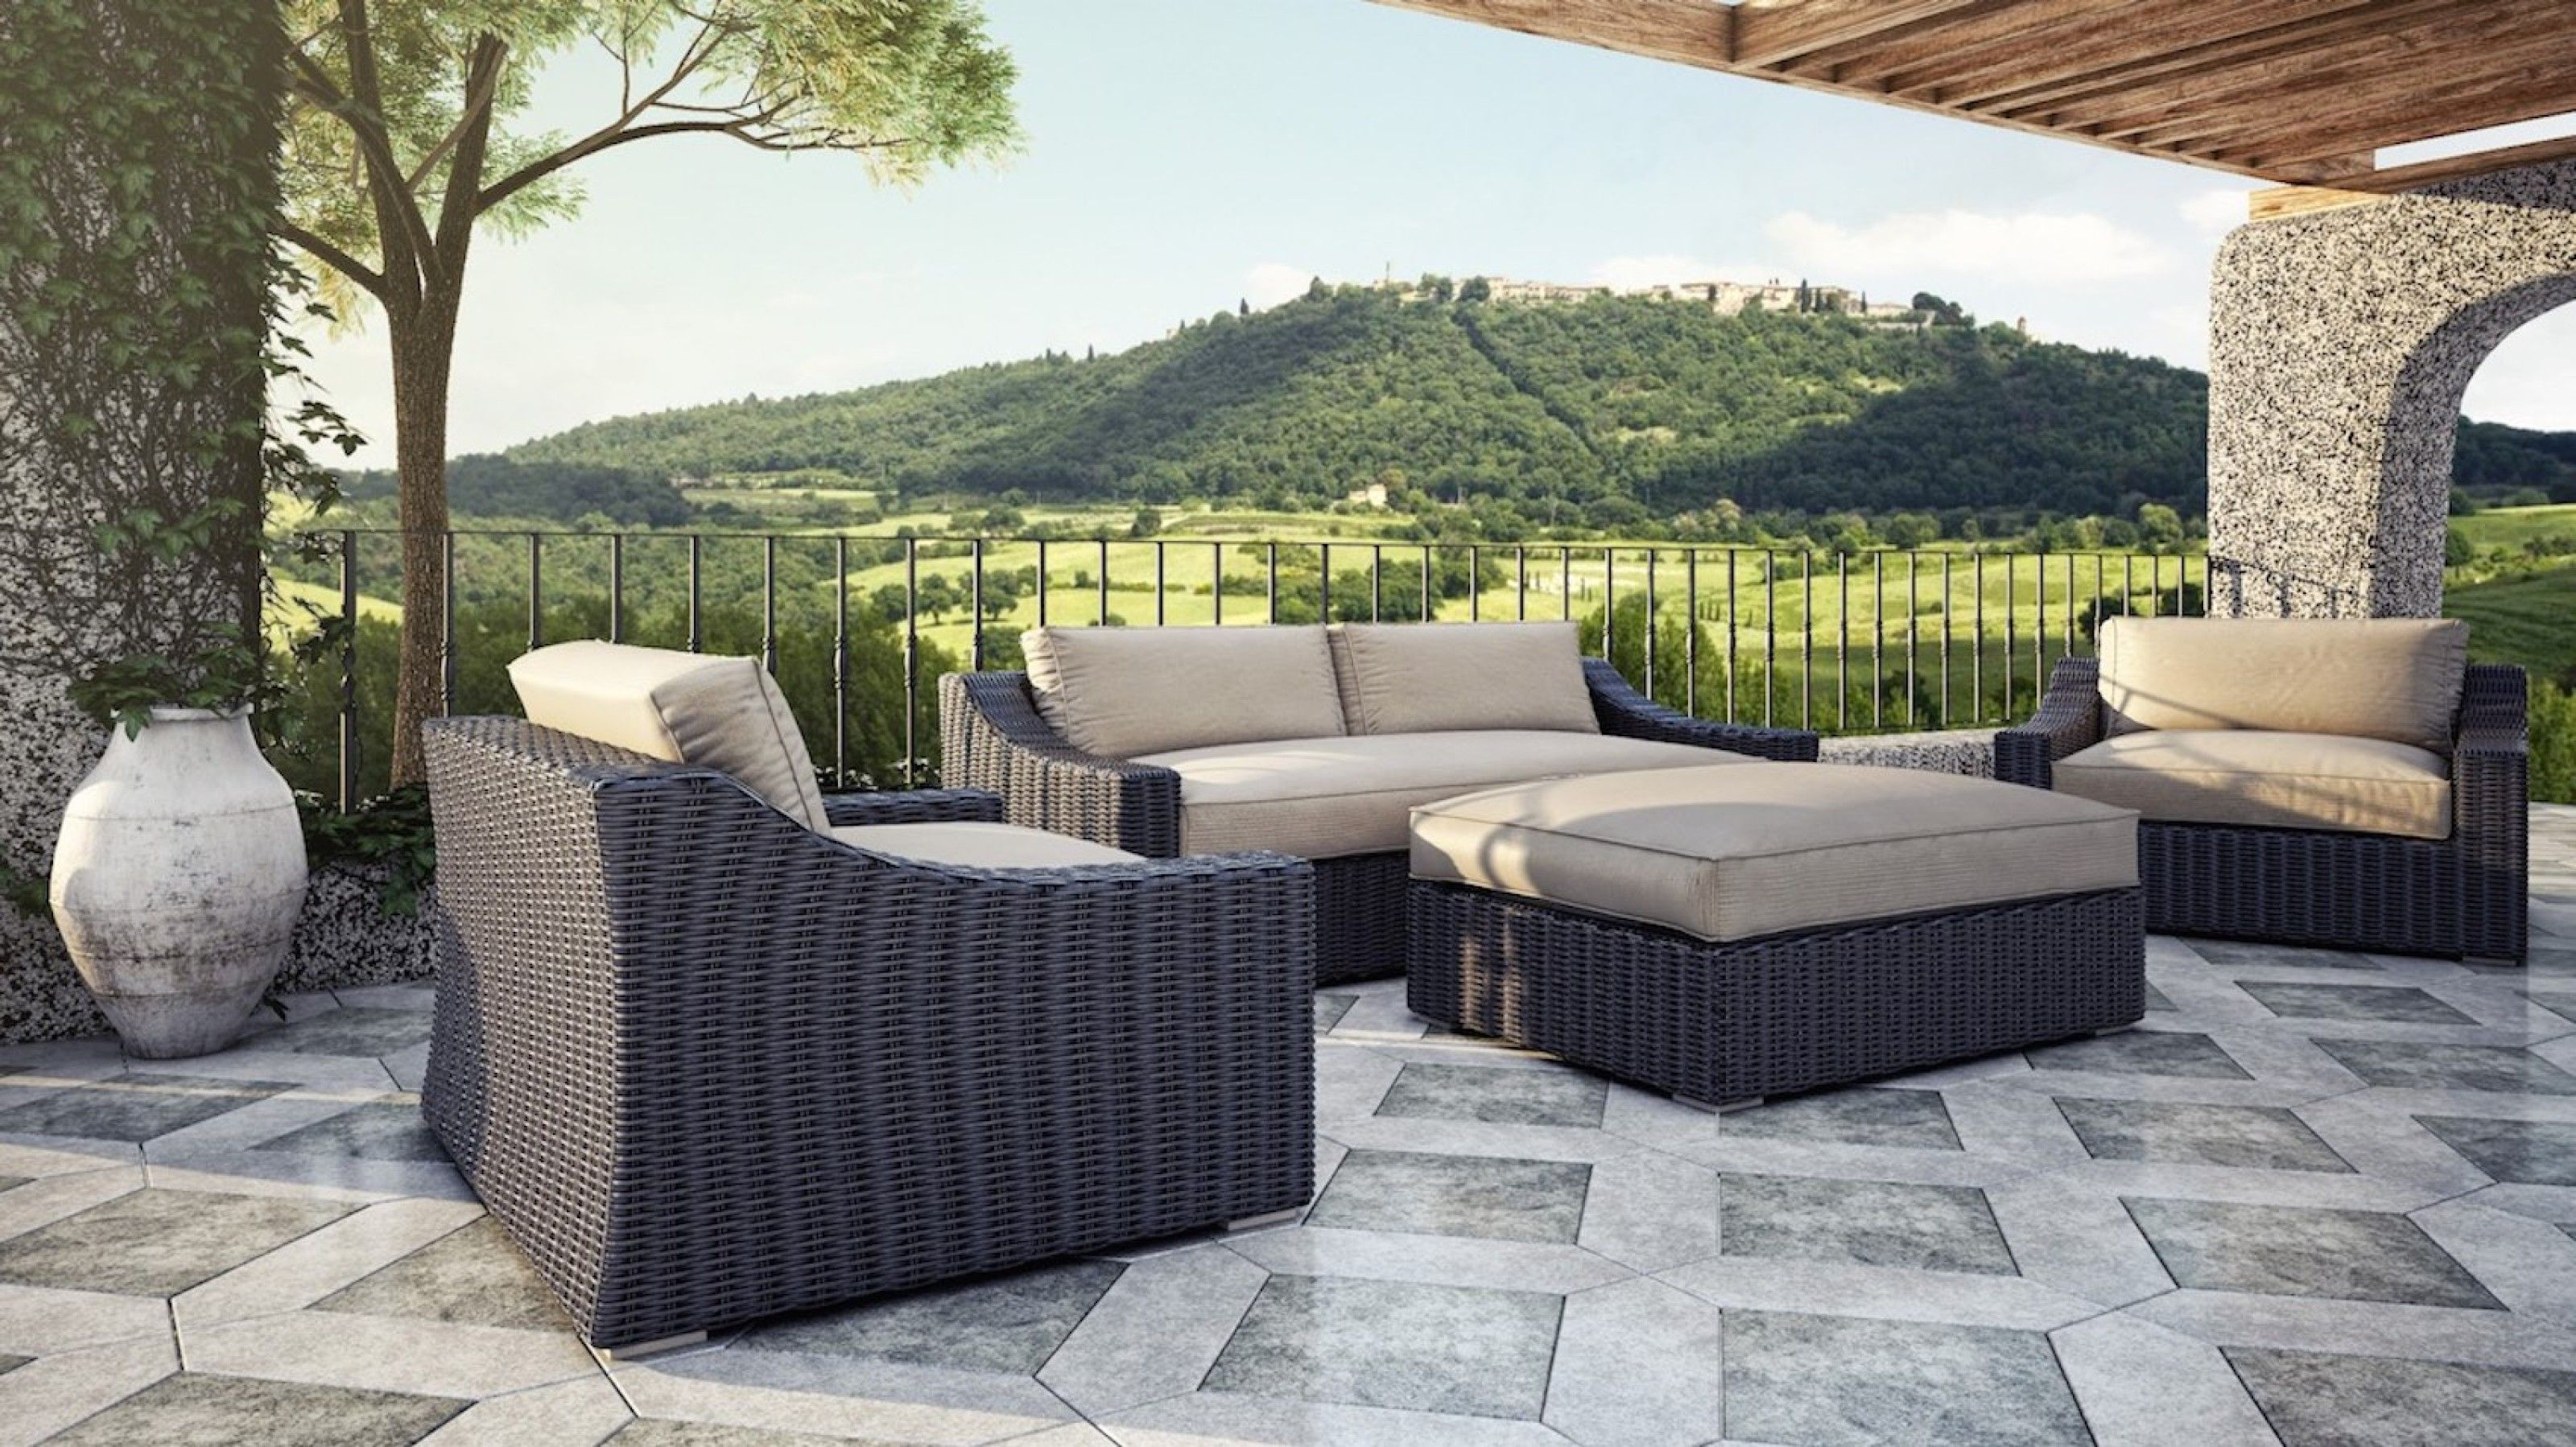 Tuscan Couch Set 3 200 Includes Couch 2 Large Arm Chairs Ottoman All Cushions Made With Sunbrella Fabric Ottoman Includ Outdoor Furniture Sets Outdoor Garden Furniture Outdoor Furniture